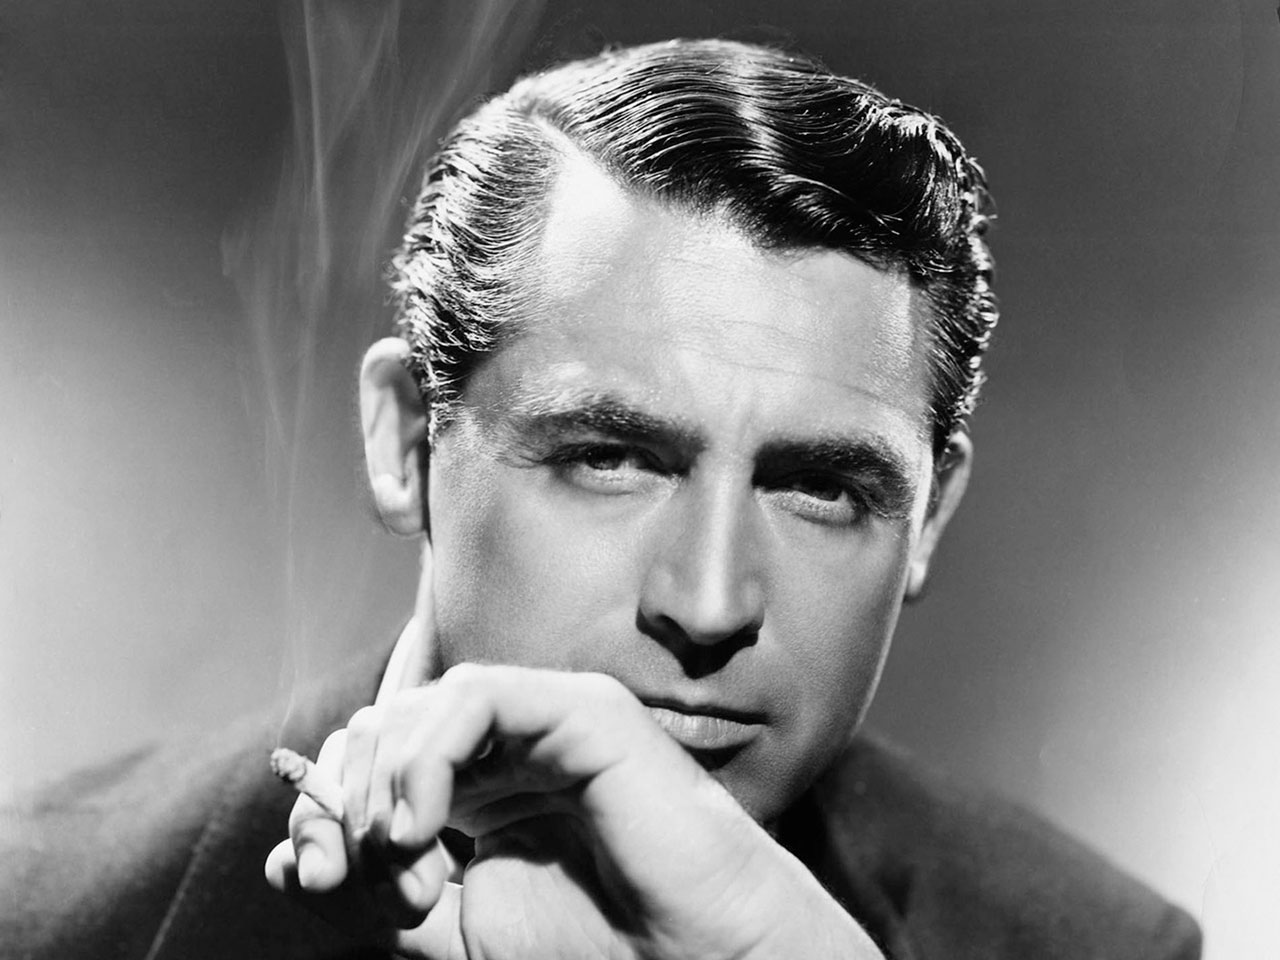 Cary Grant Picture - Image 5